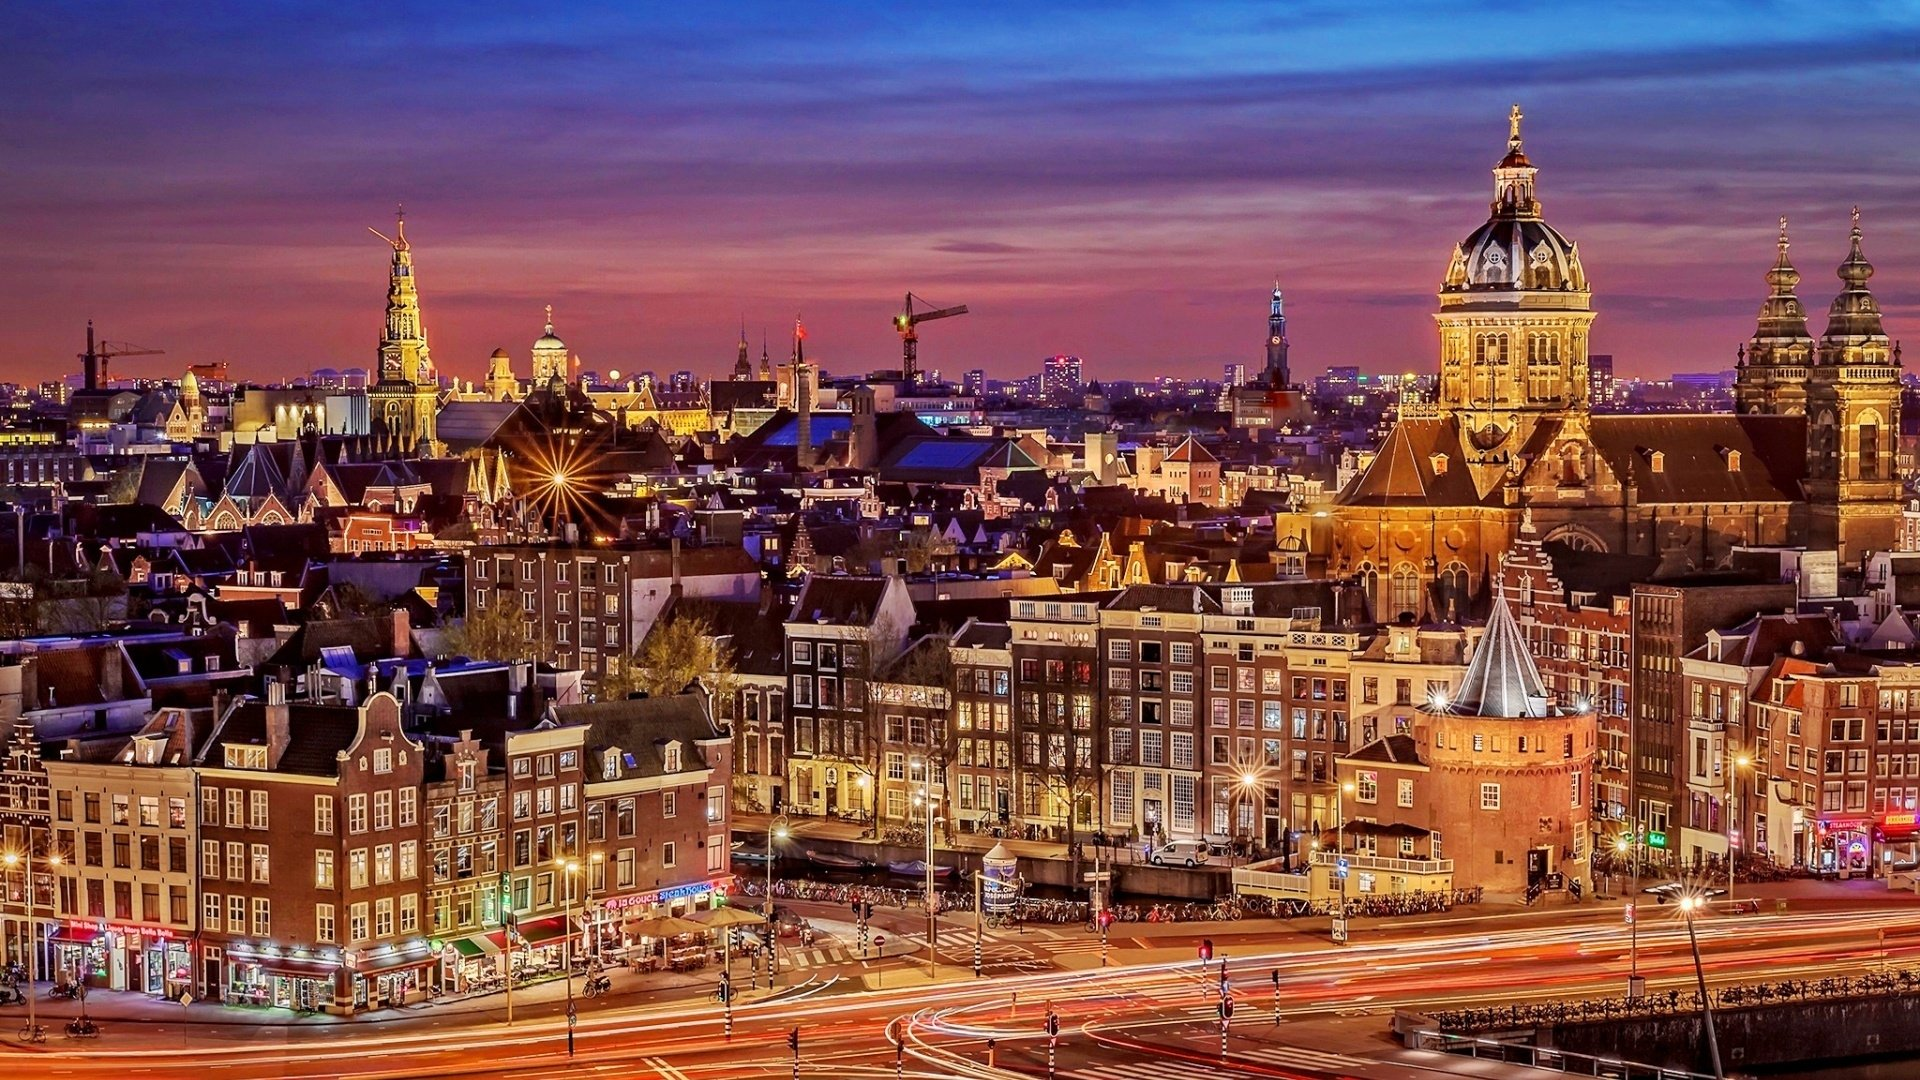 Man Made - Amsterdam  Man Made Cityscape City Night Building Architecture Wallpaper